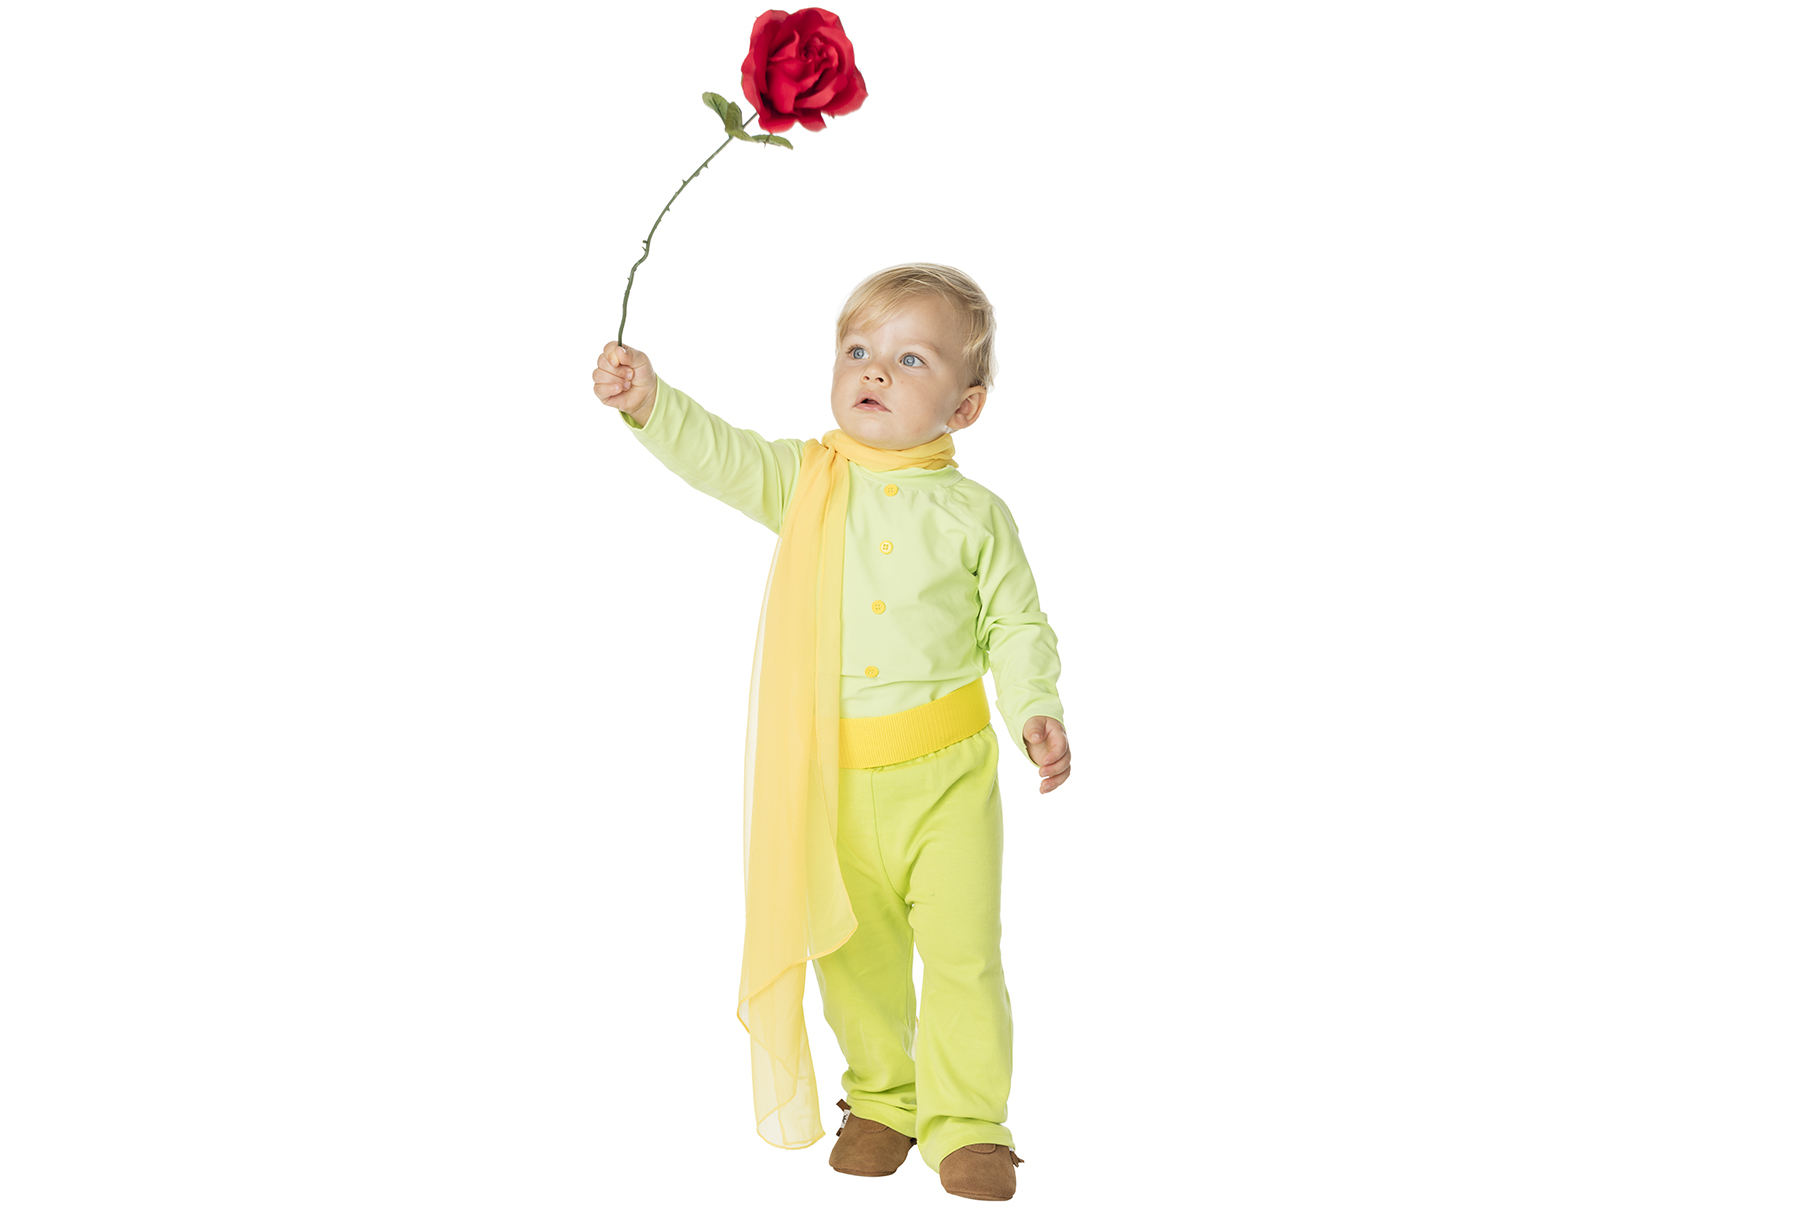 DIY Halloween costumes - The Little Prince Costume